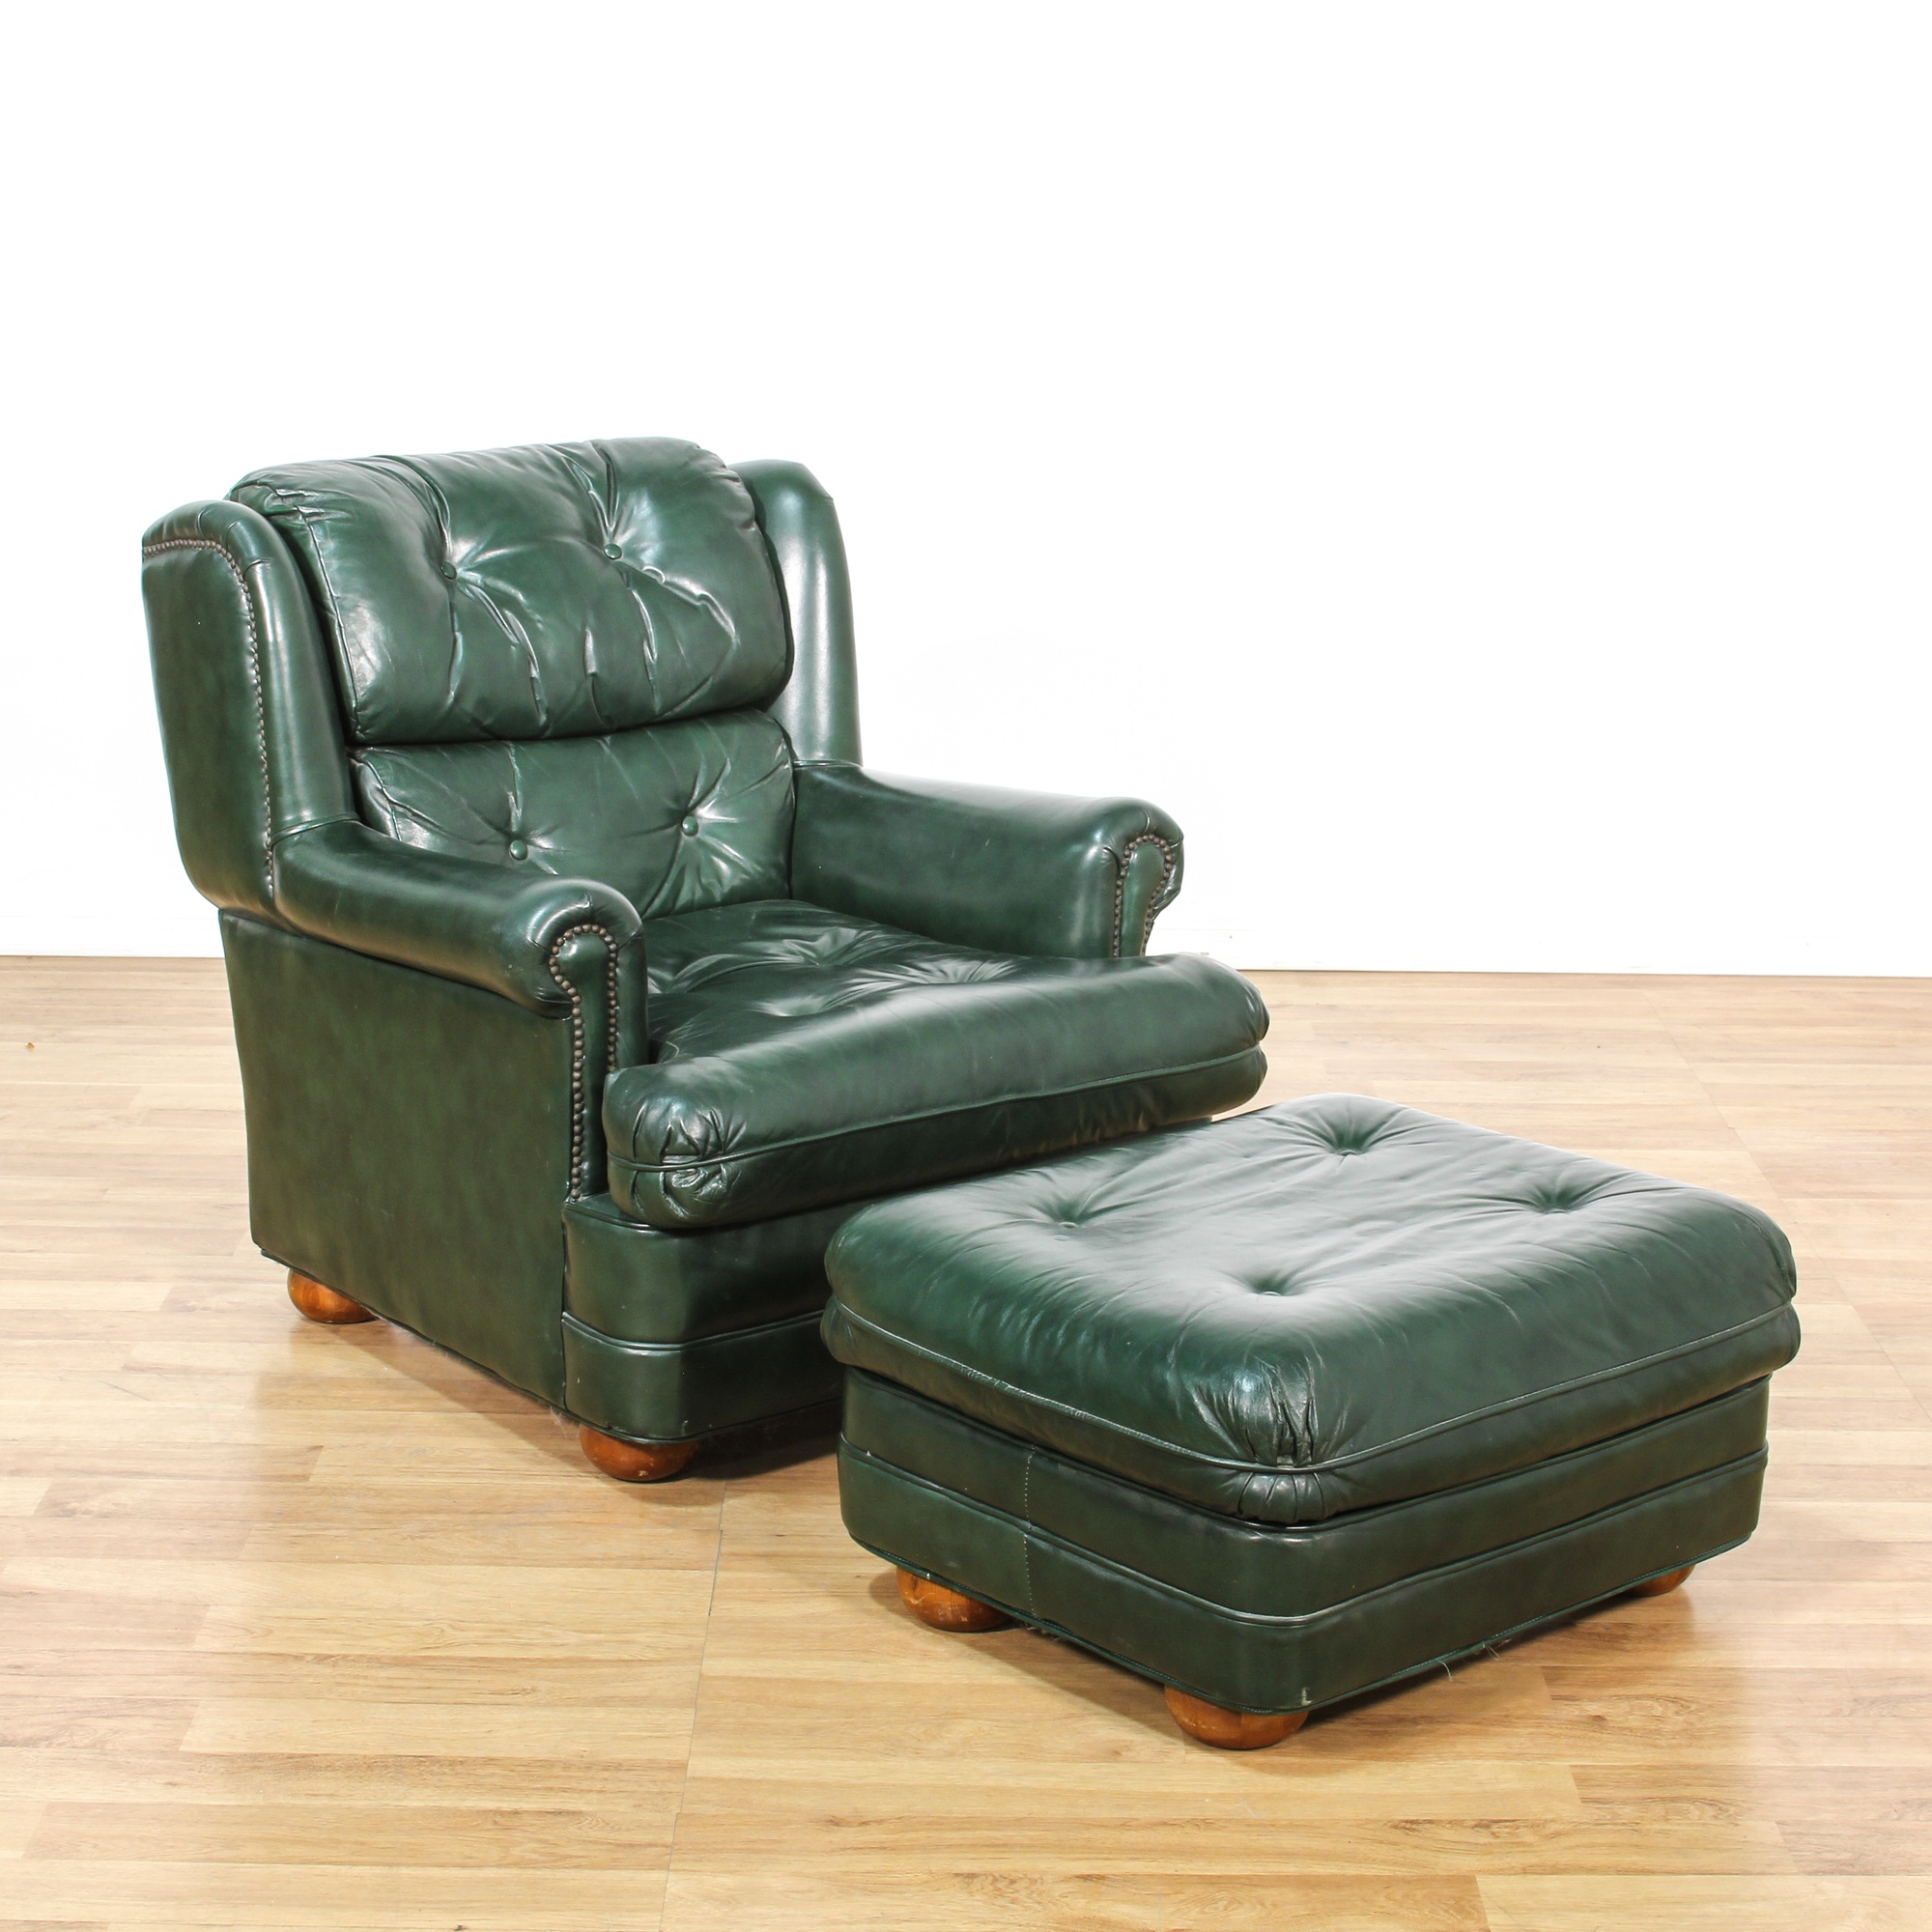 Dark Green Leather Upholstered Chair Ottoman Loveseat Vintage Furniture San Diego Los Angeles